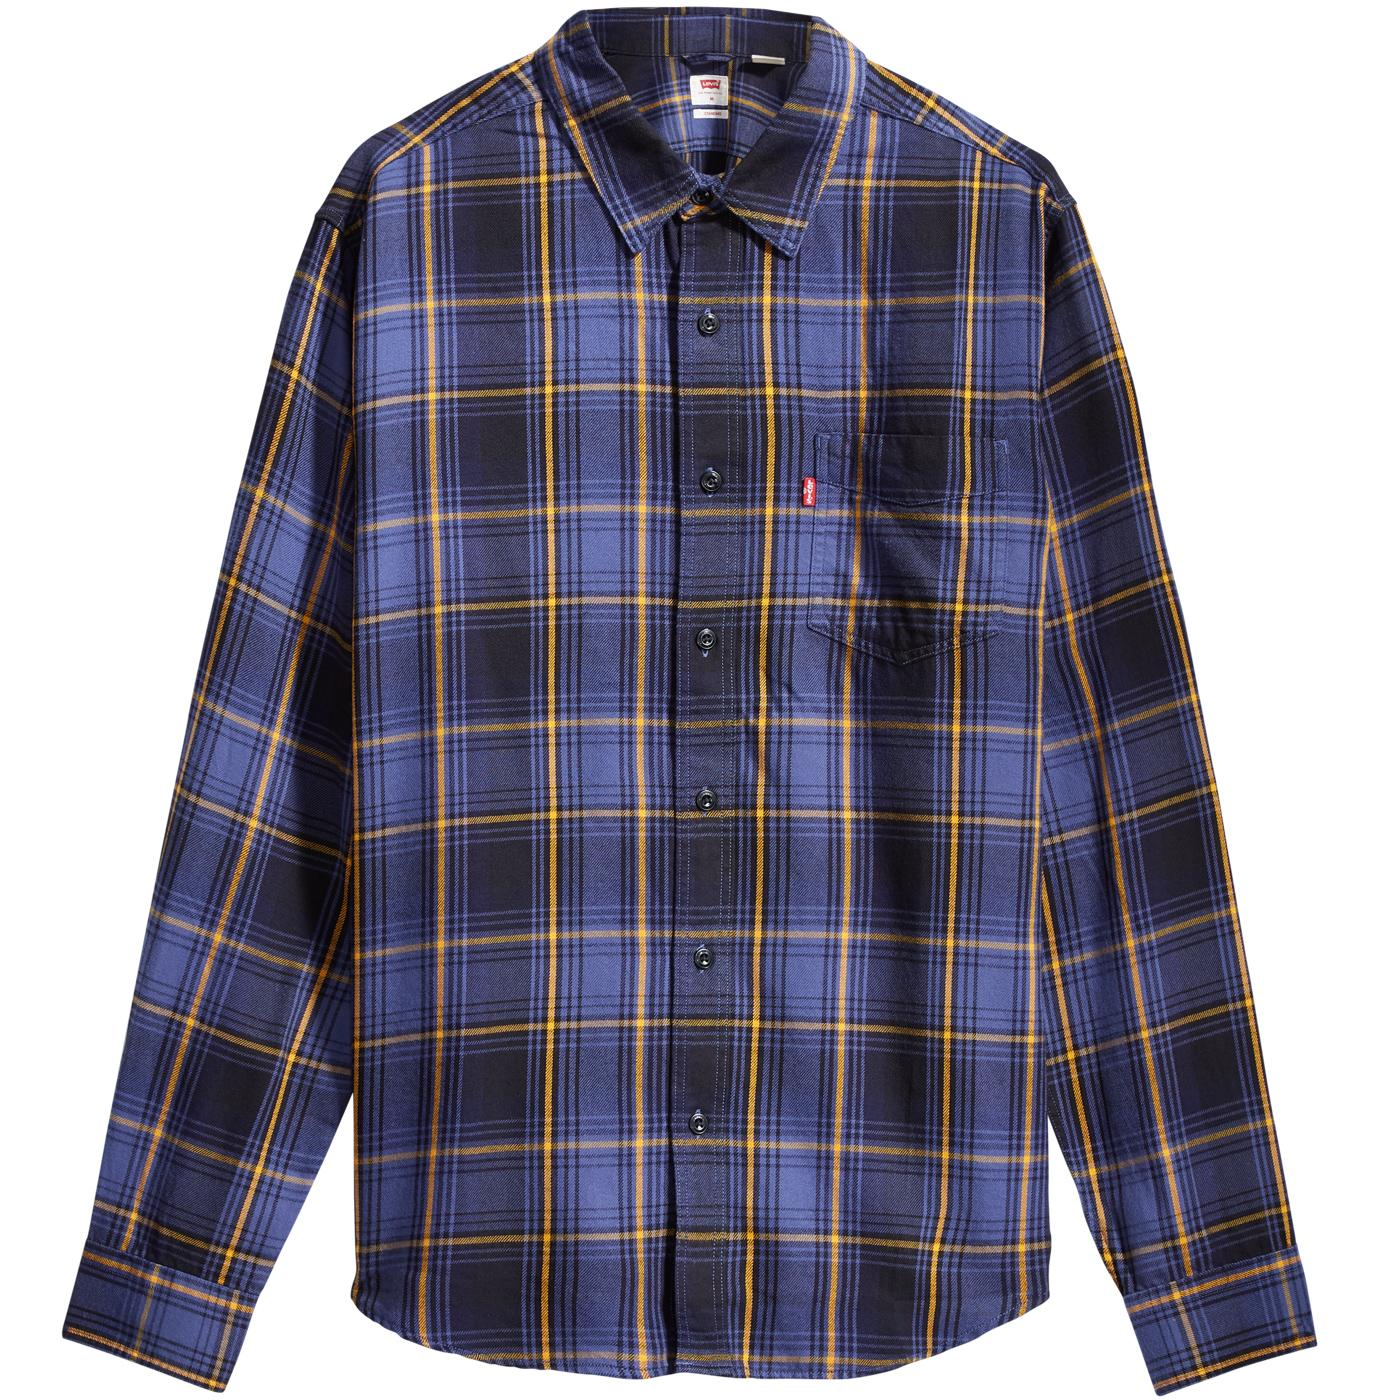 LEVI'S Sunset 1 Pocket Retro Mod Check Shirt (AGY)